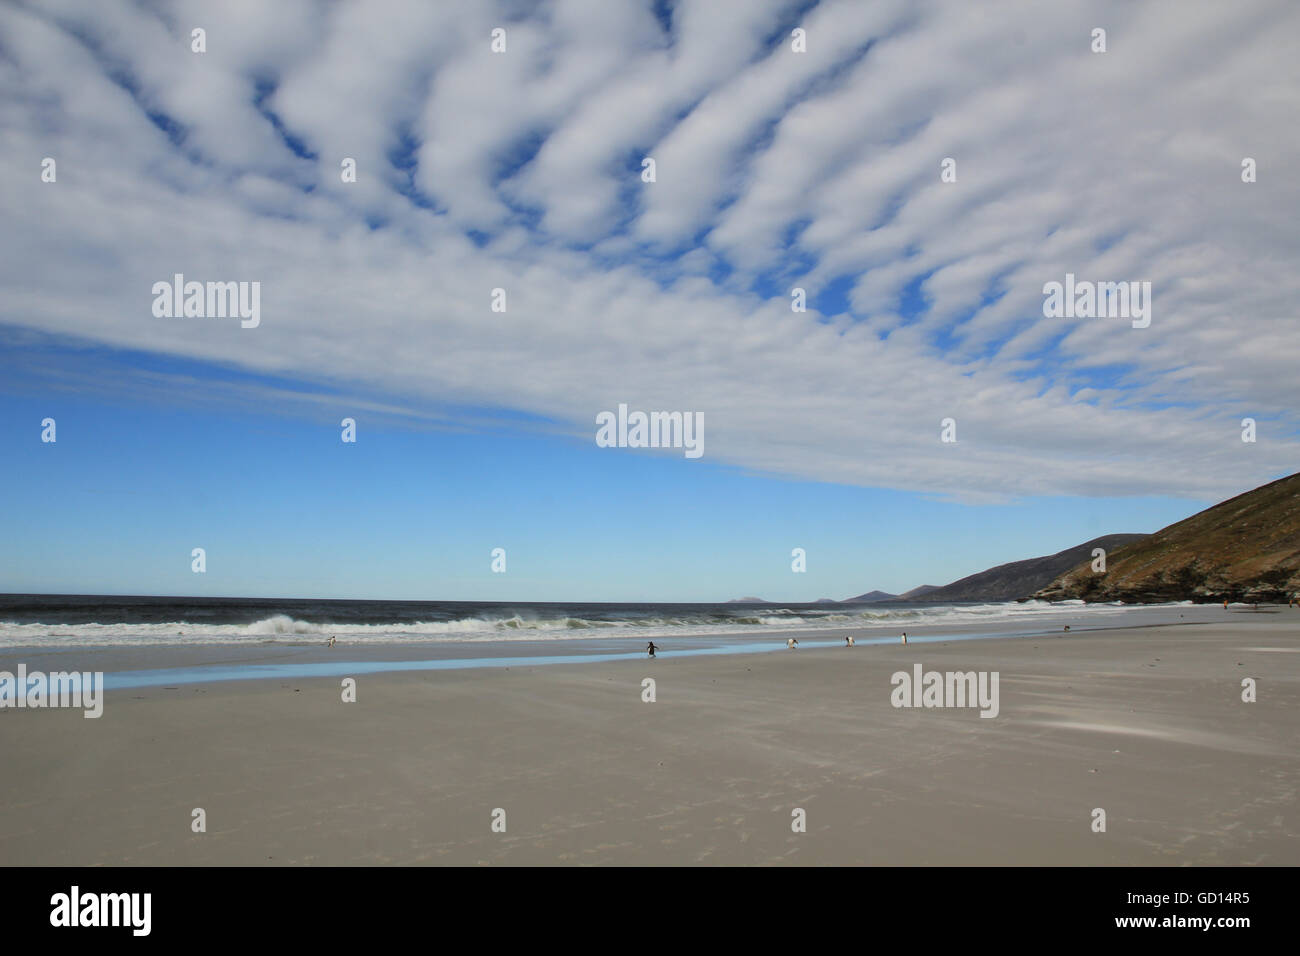 The clouds and beach of Saunders Point, Falkland islands - Stock Image